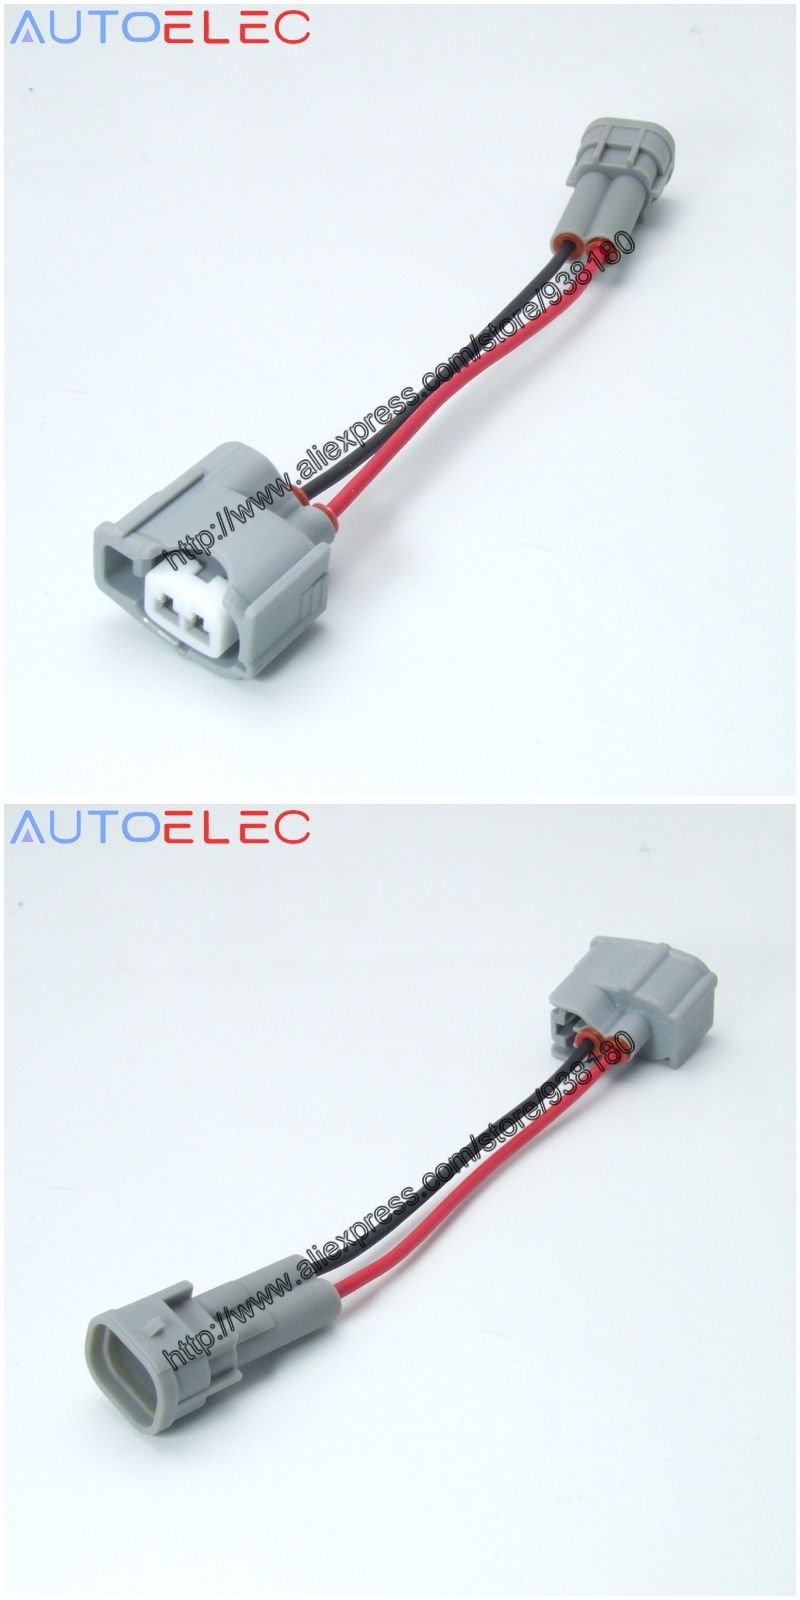 1pcs 2pin Fuel Injector Connector Adaptor Wiring Harness 1jz 1jzgte High Flow Rail Complete